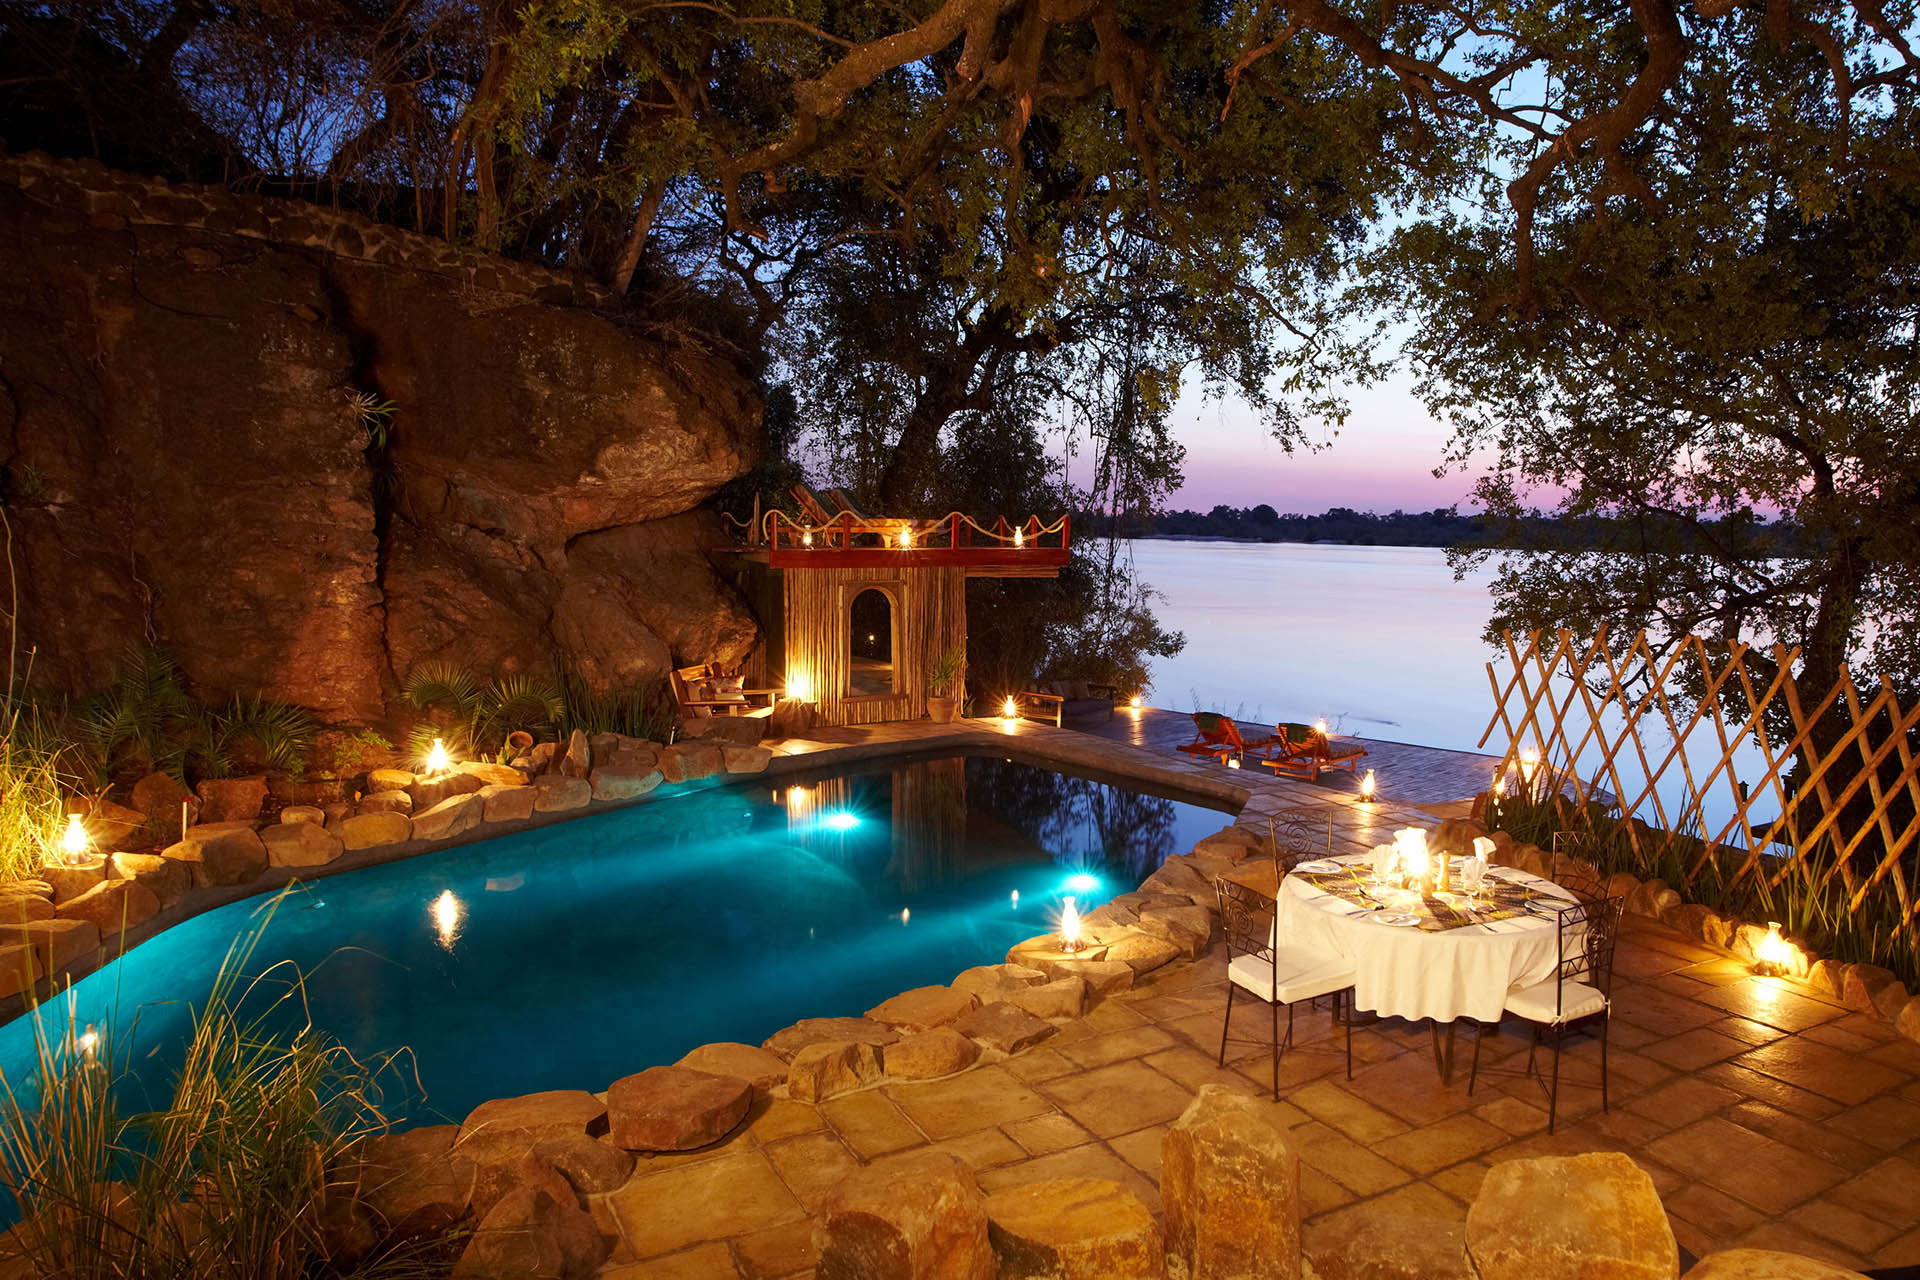 lower zambezi national park tours--south-luangwa-8-nights-malawian-style-malawi-adventures-experiences-specialist-tour-operator-tongabezi-lodge-pool